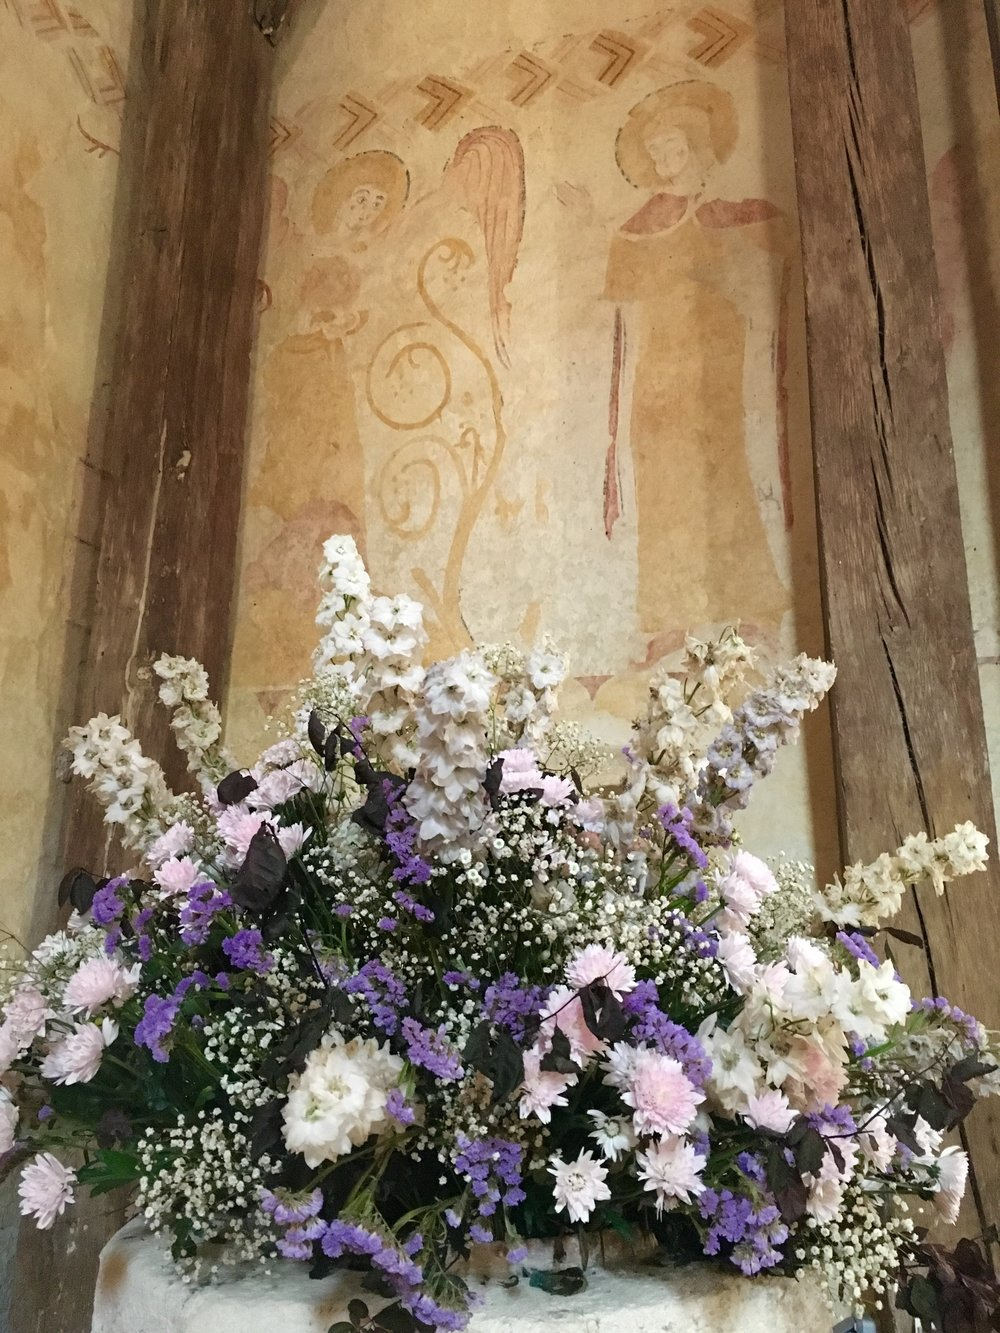 Fresh flowers graced Eglise St. Pierre the day we visited. Above, the Annunciation in a 12th century fresco. (photograph J. Cook)